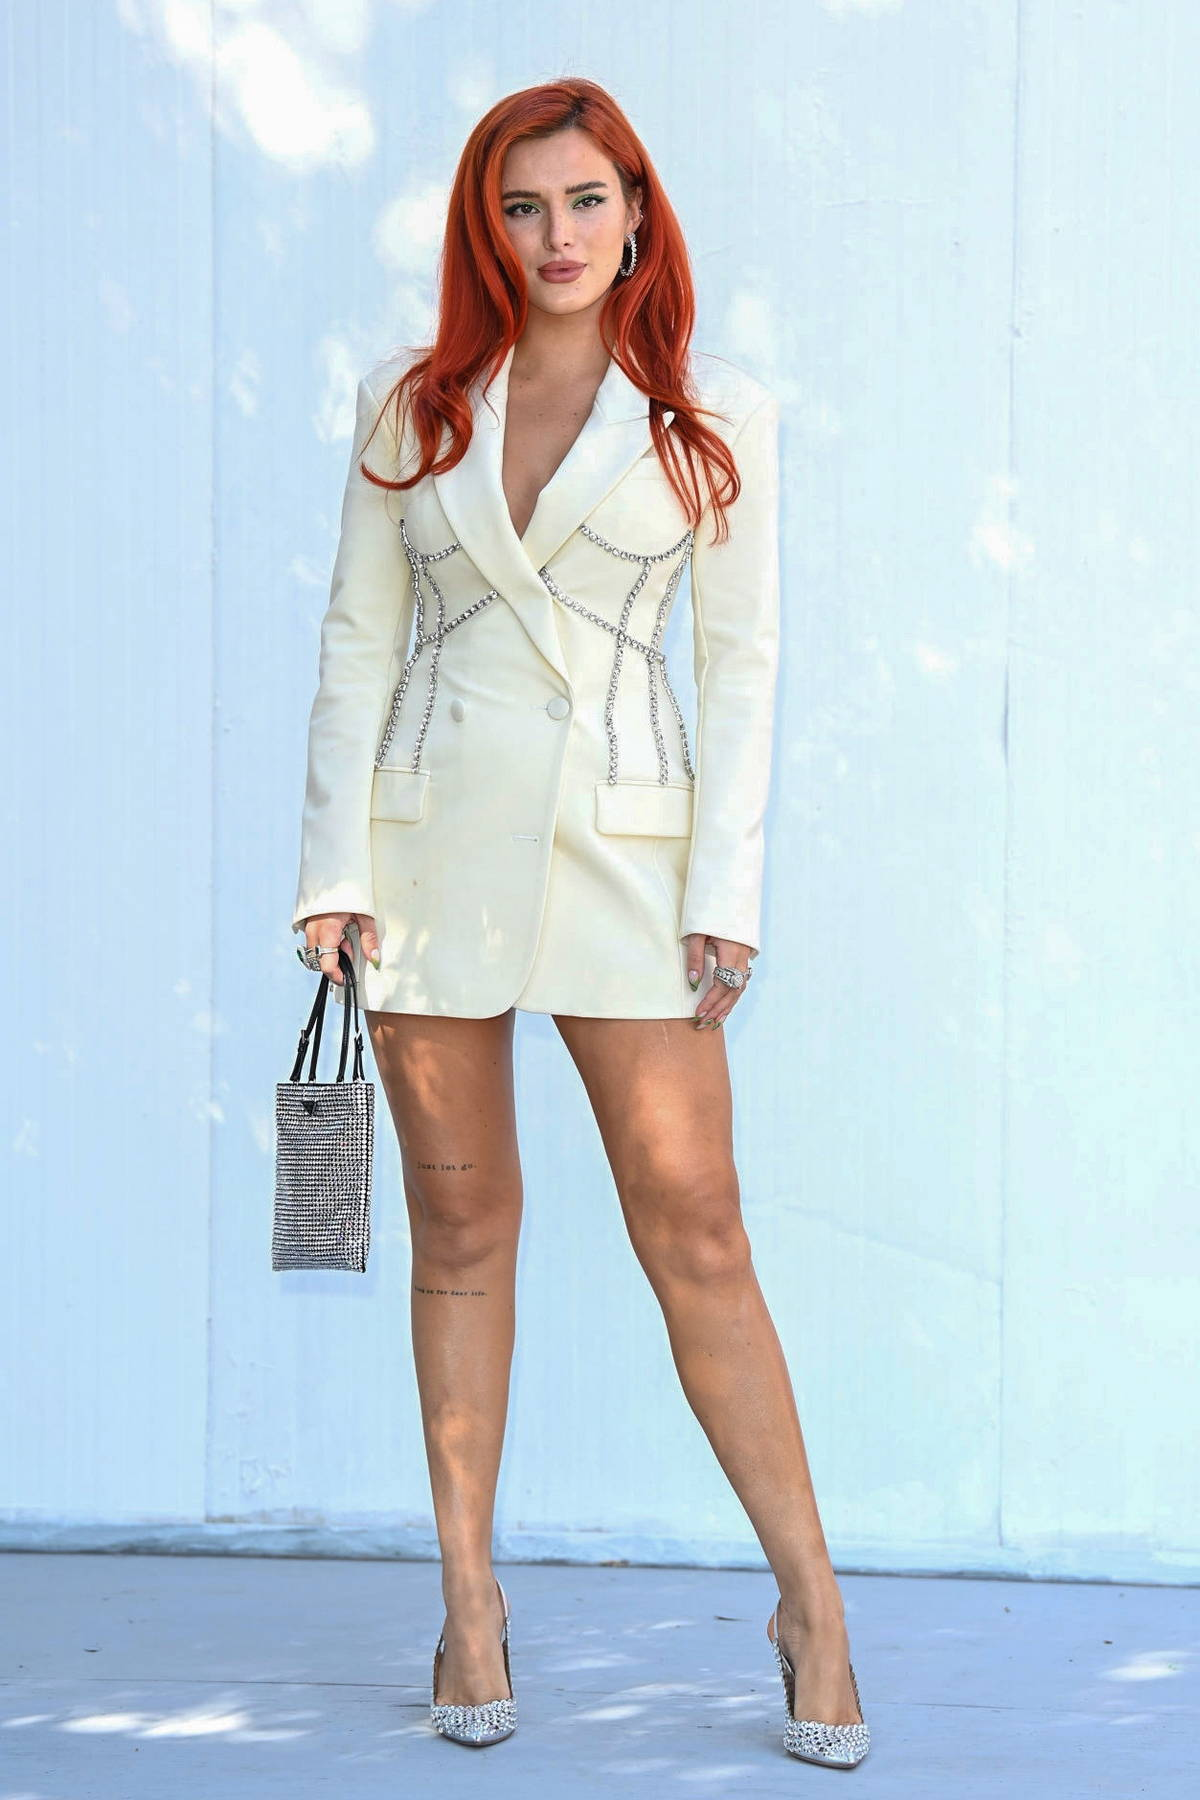 Bella Thorne attends the photocall for 'Time Is Up' during the 19th Alice Nella Città 2021 at Casa Alice in Rome, Italy